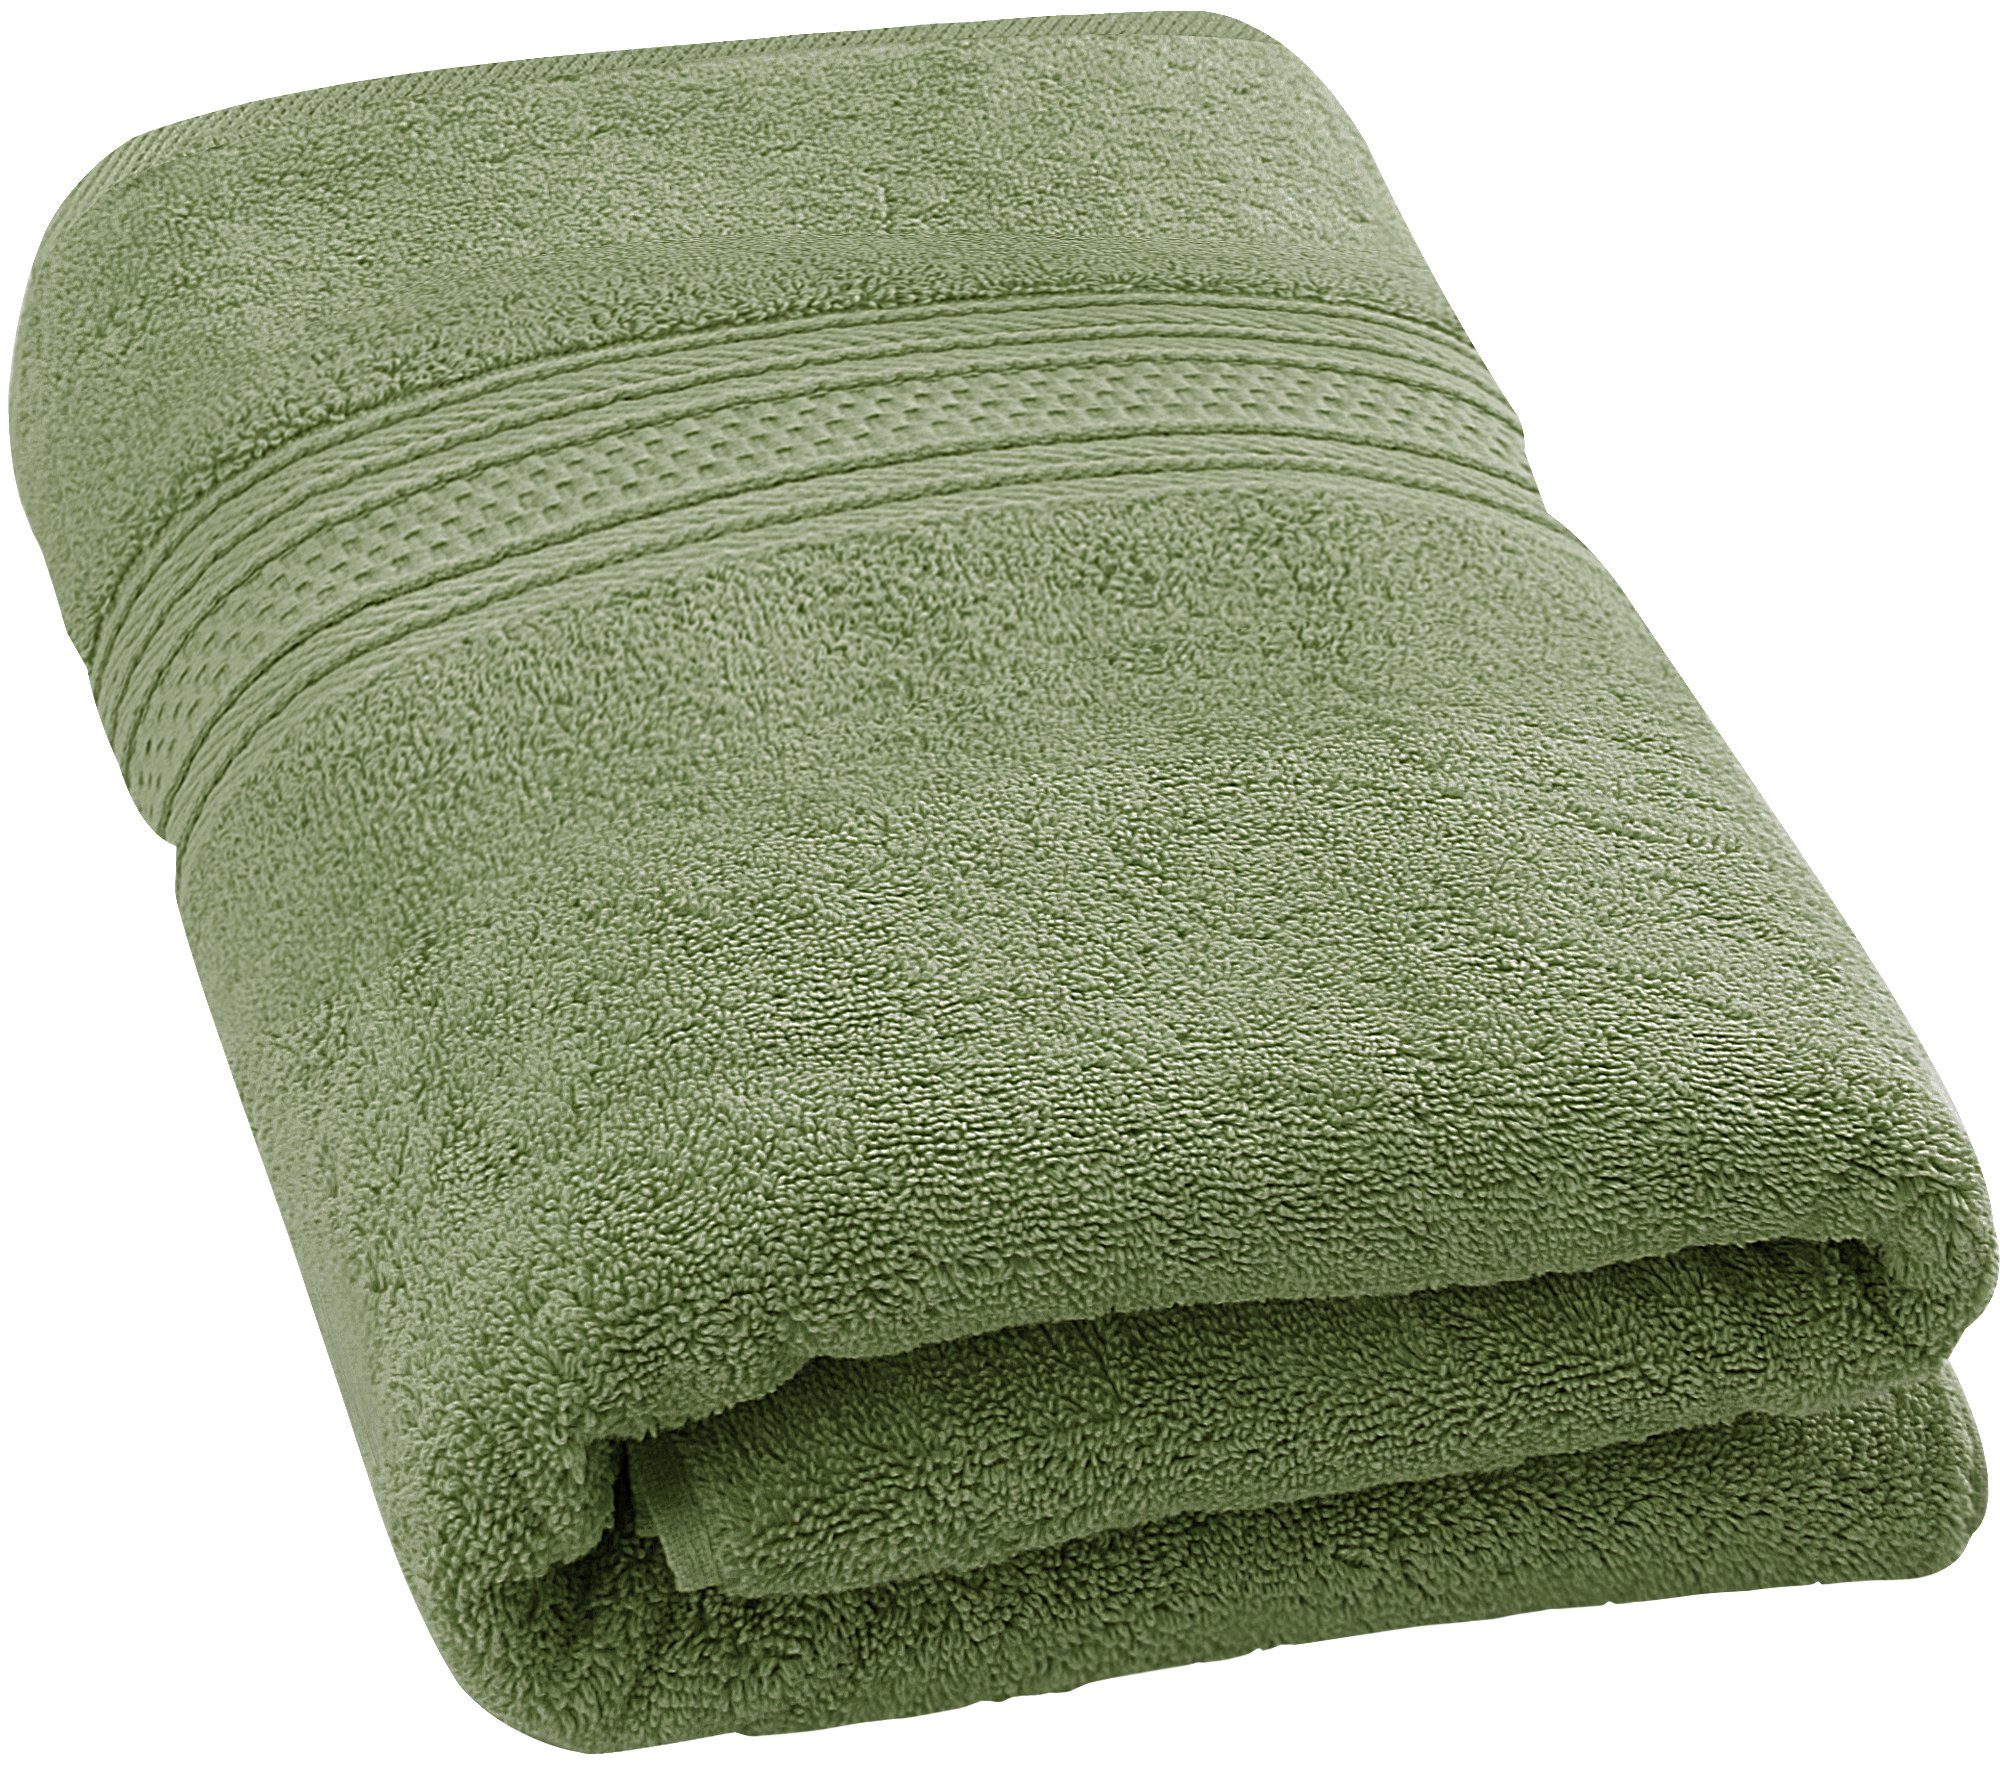 Utopia Towels 700 GSM Premium Cotton Bath Towel (Sage Green, 27 x 54 inches) Luxury Bath Sheet Perfect for Home, Bathrooms, Pool and Gym Ring-Spun Cotton